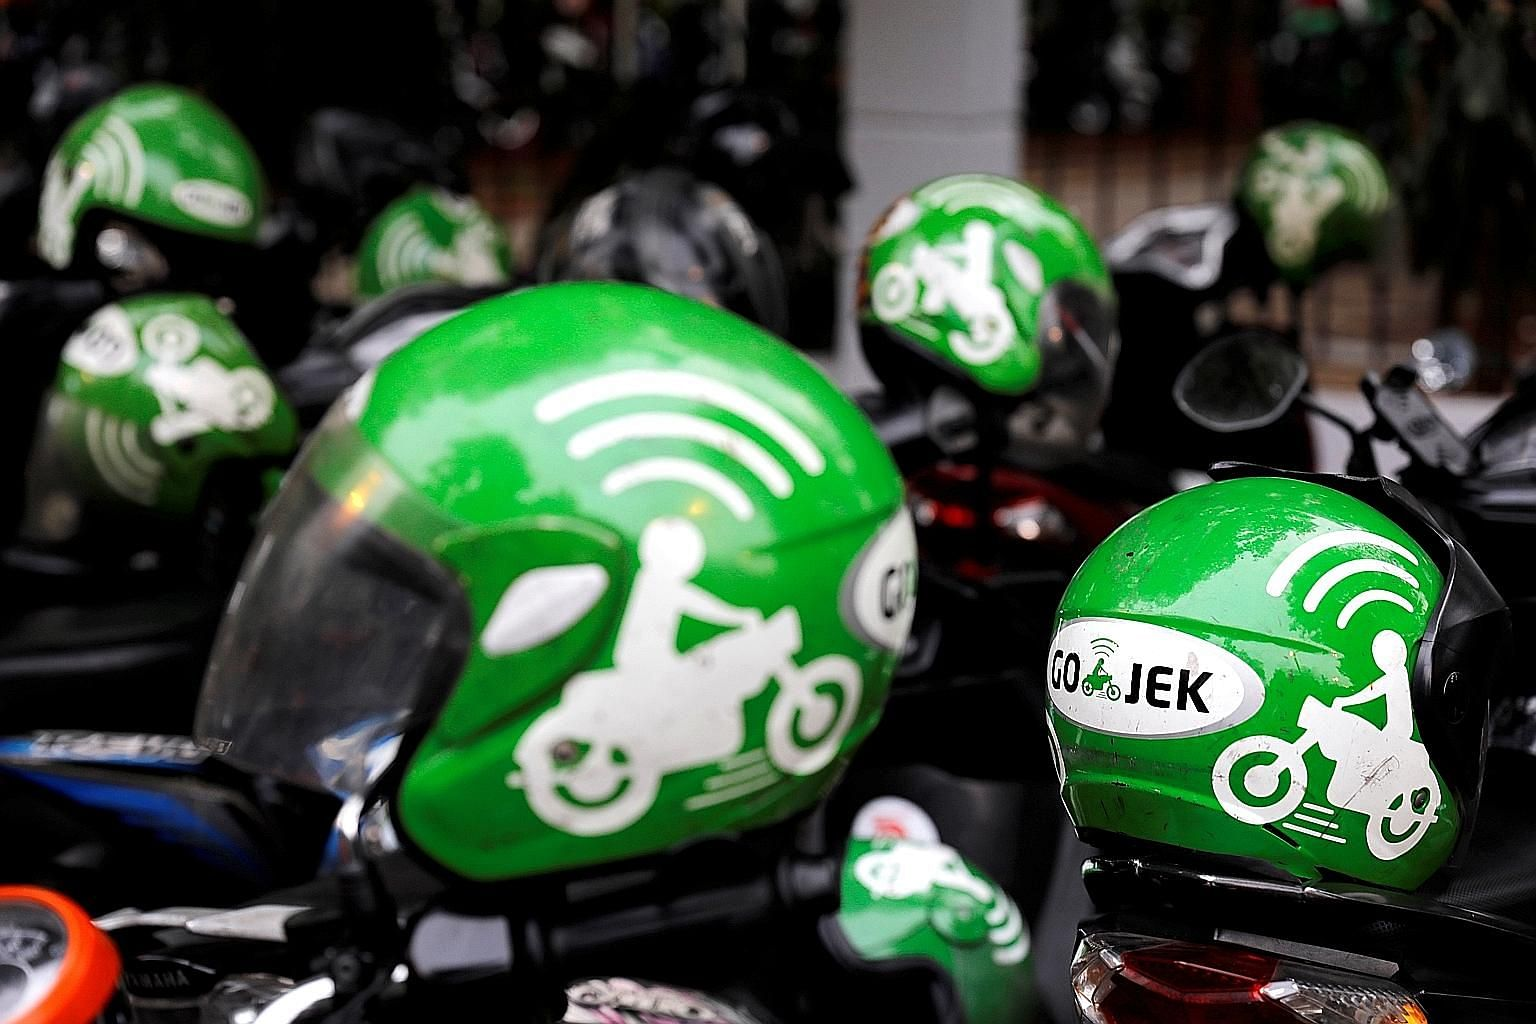 Gojek, which debuted an app for hailing motorbike taxis in Jakarta in 2015, now also offers a score of other on-demand services such as house cleaning and medicine delivery, and was last valued at US$10 billion (S$14.3 billion), according to CB Insig